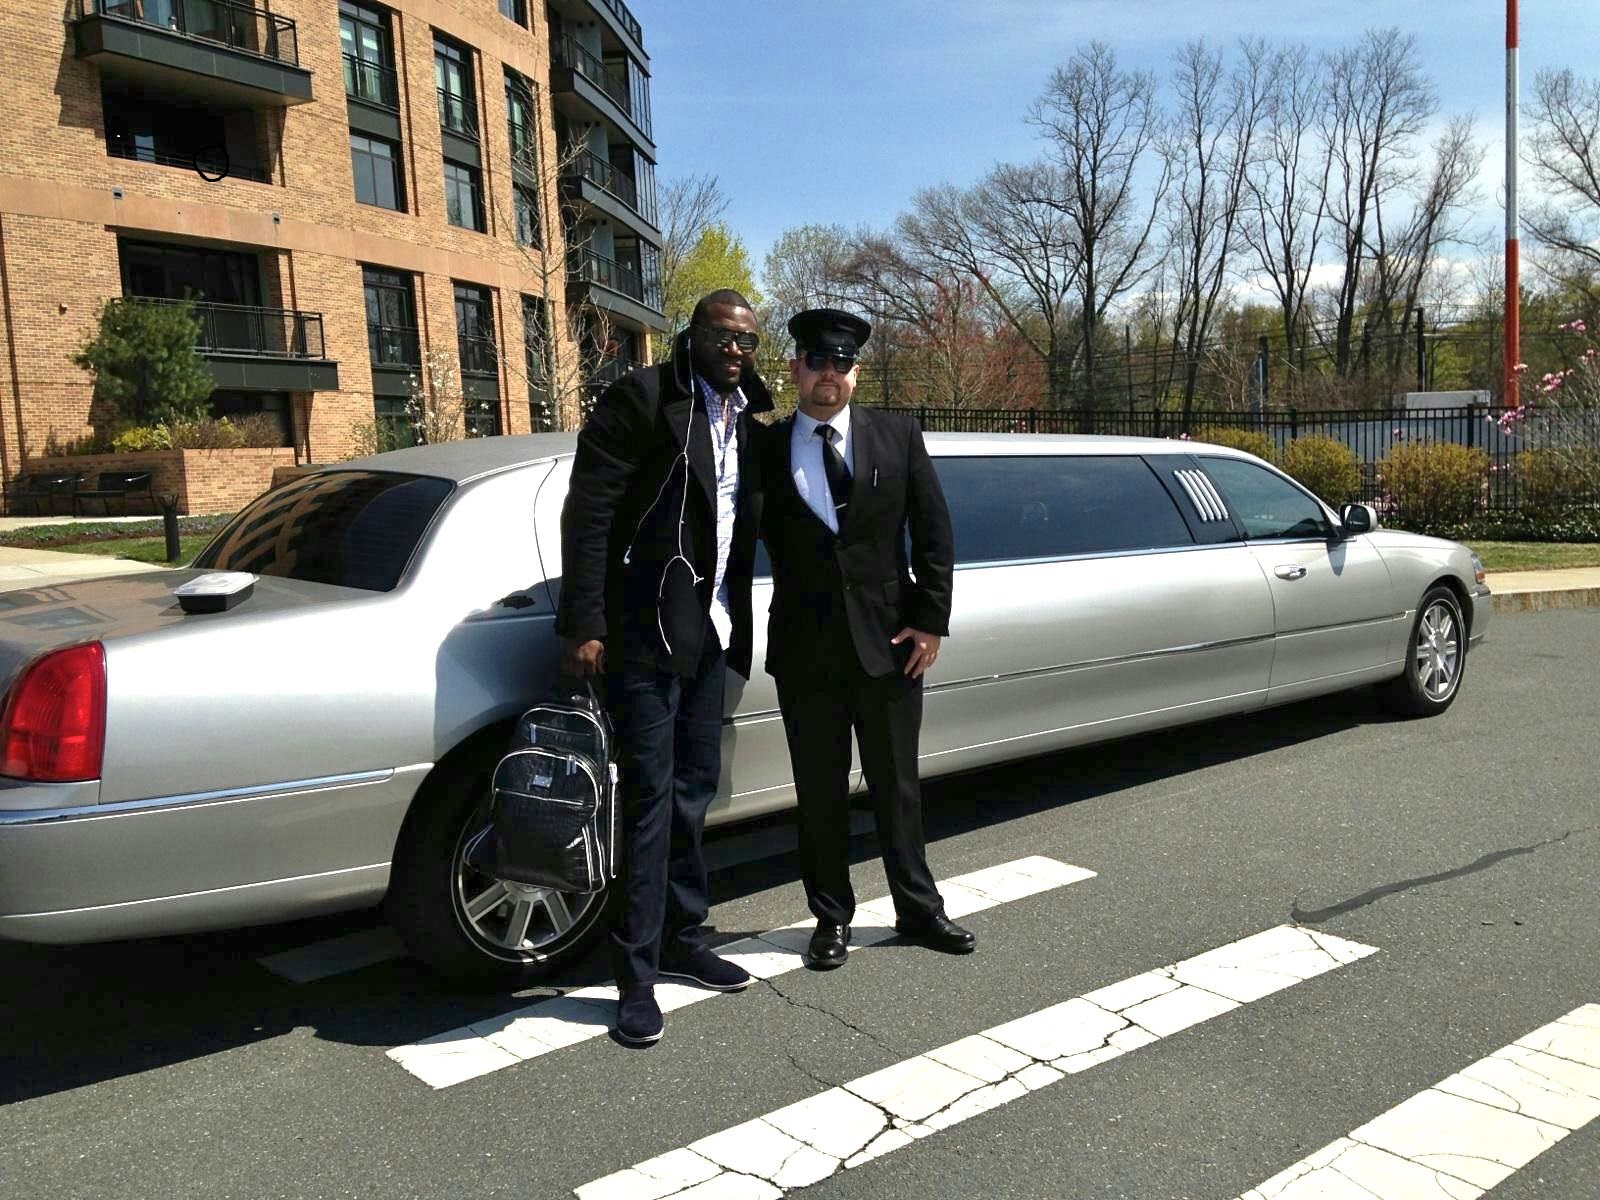 Limos for Rent Spencer Ma 01562